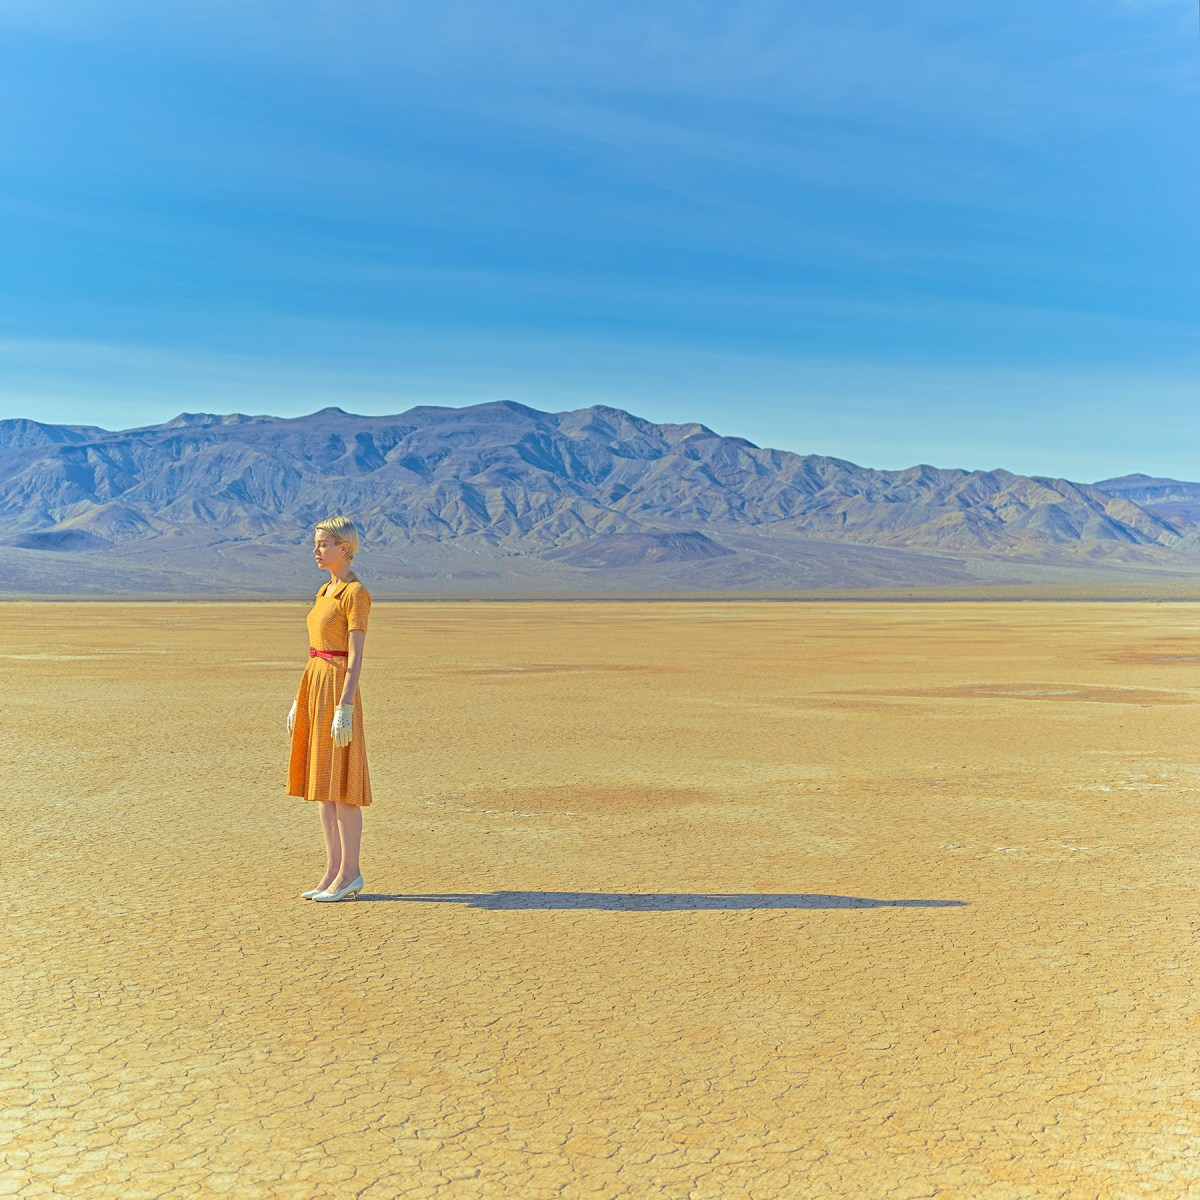 lady in the desert